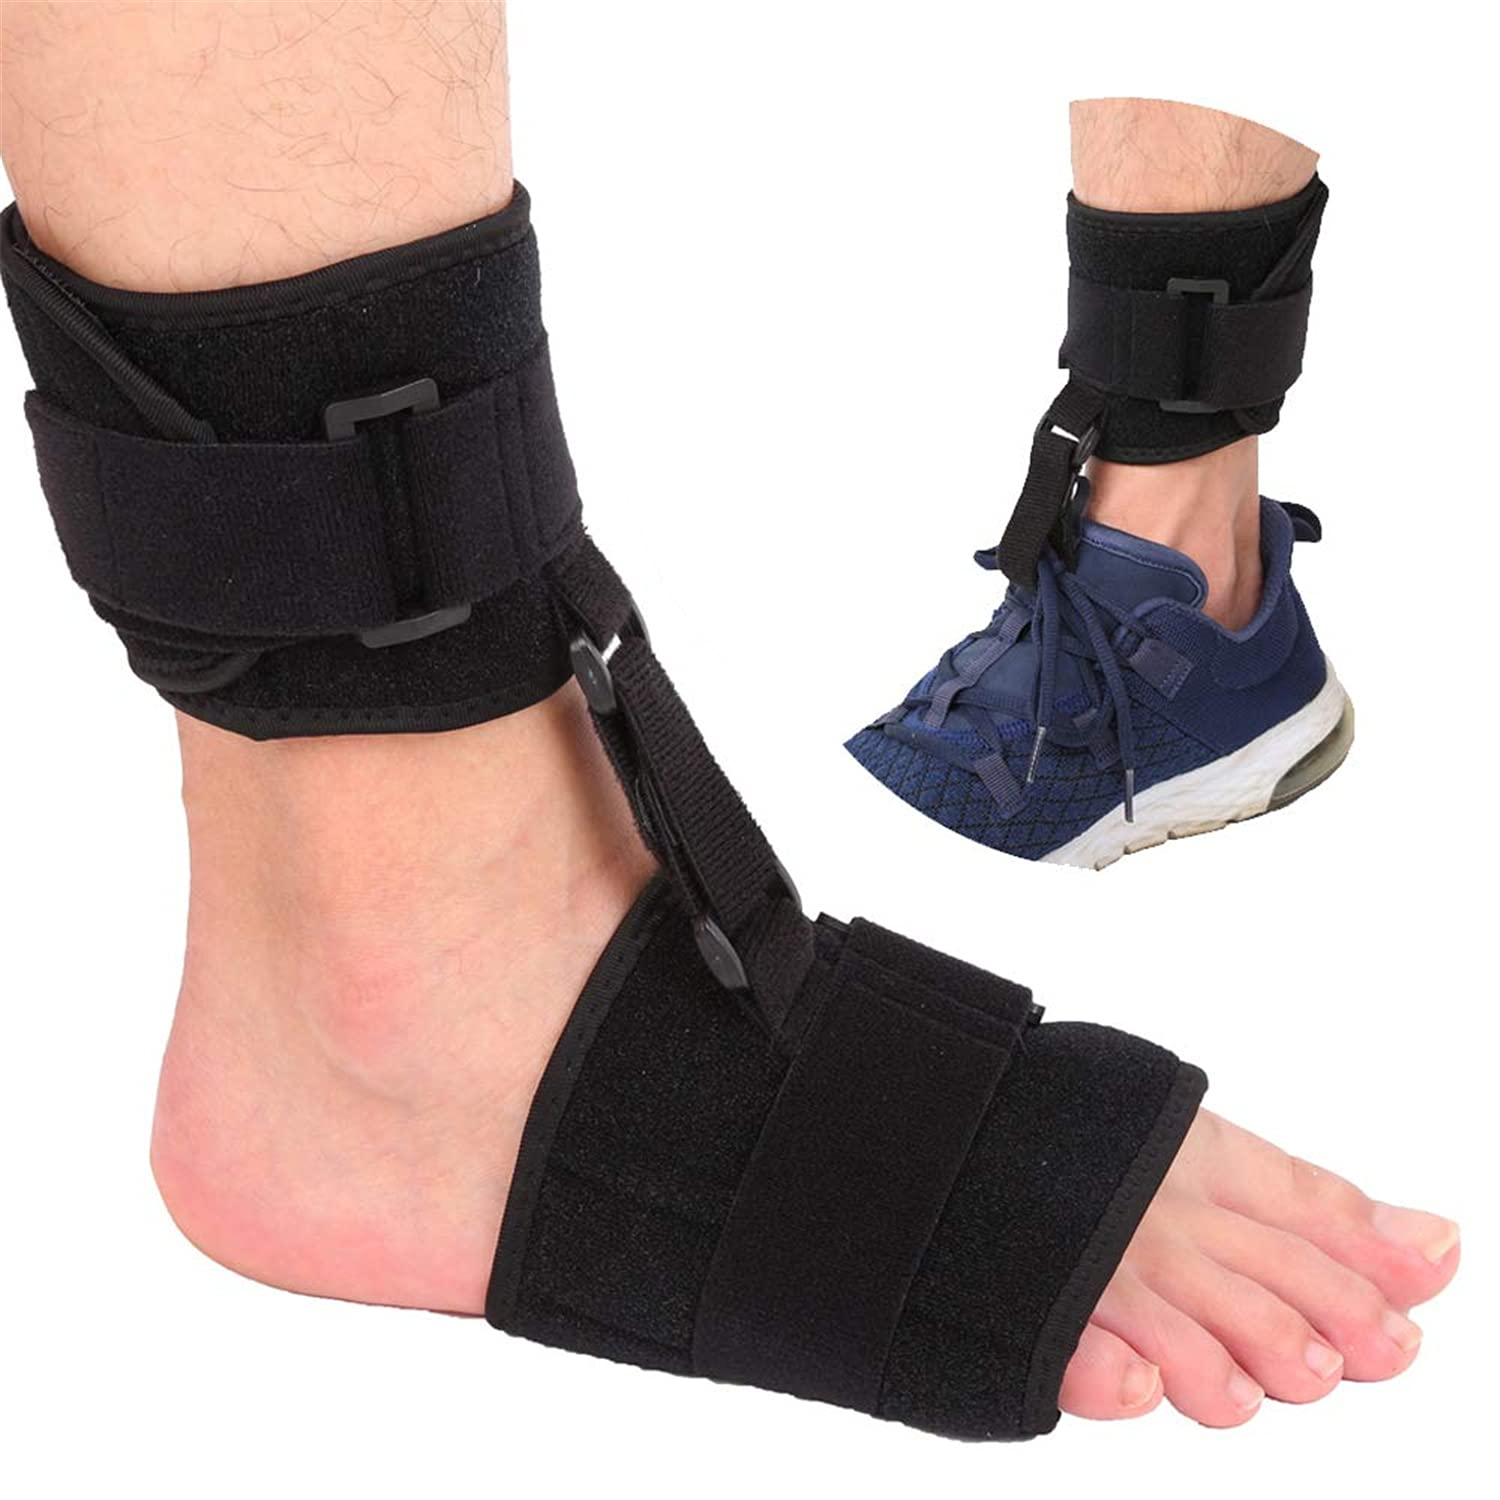 Max 73% OFF Challenge the lowest price Night Splints for Plantar Fasciitis Black New Mul Upgraded 2021